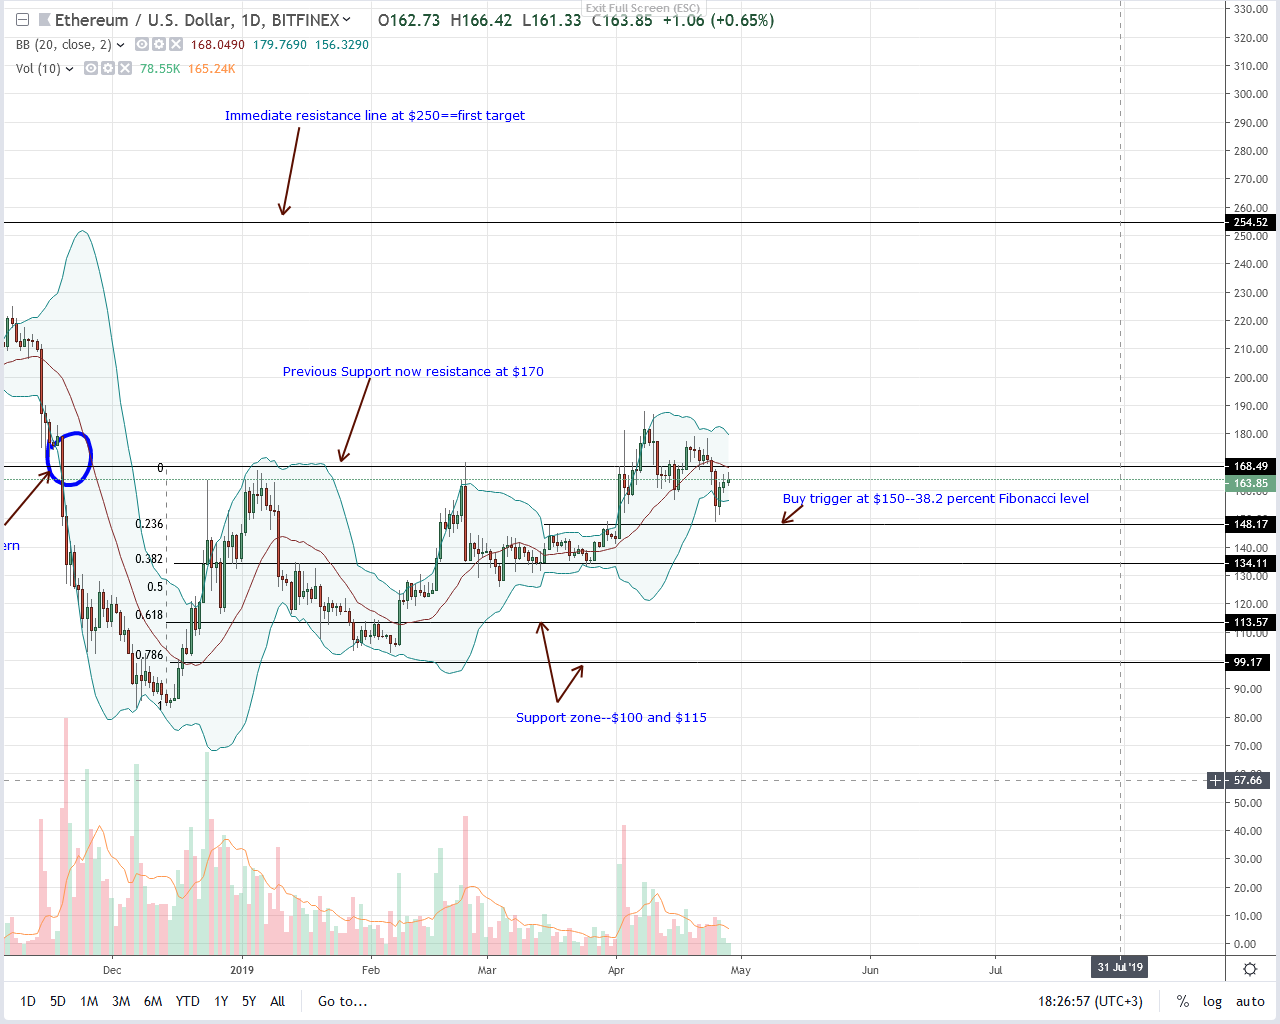 Even With Samsung, Ethereum (ETH) Bulls Must Nullify Q4 2018 Bears